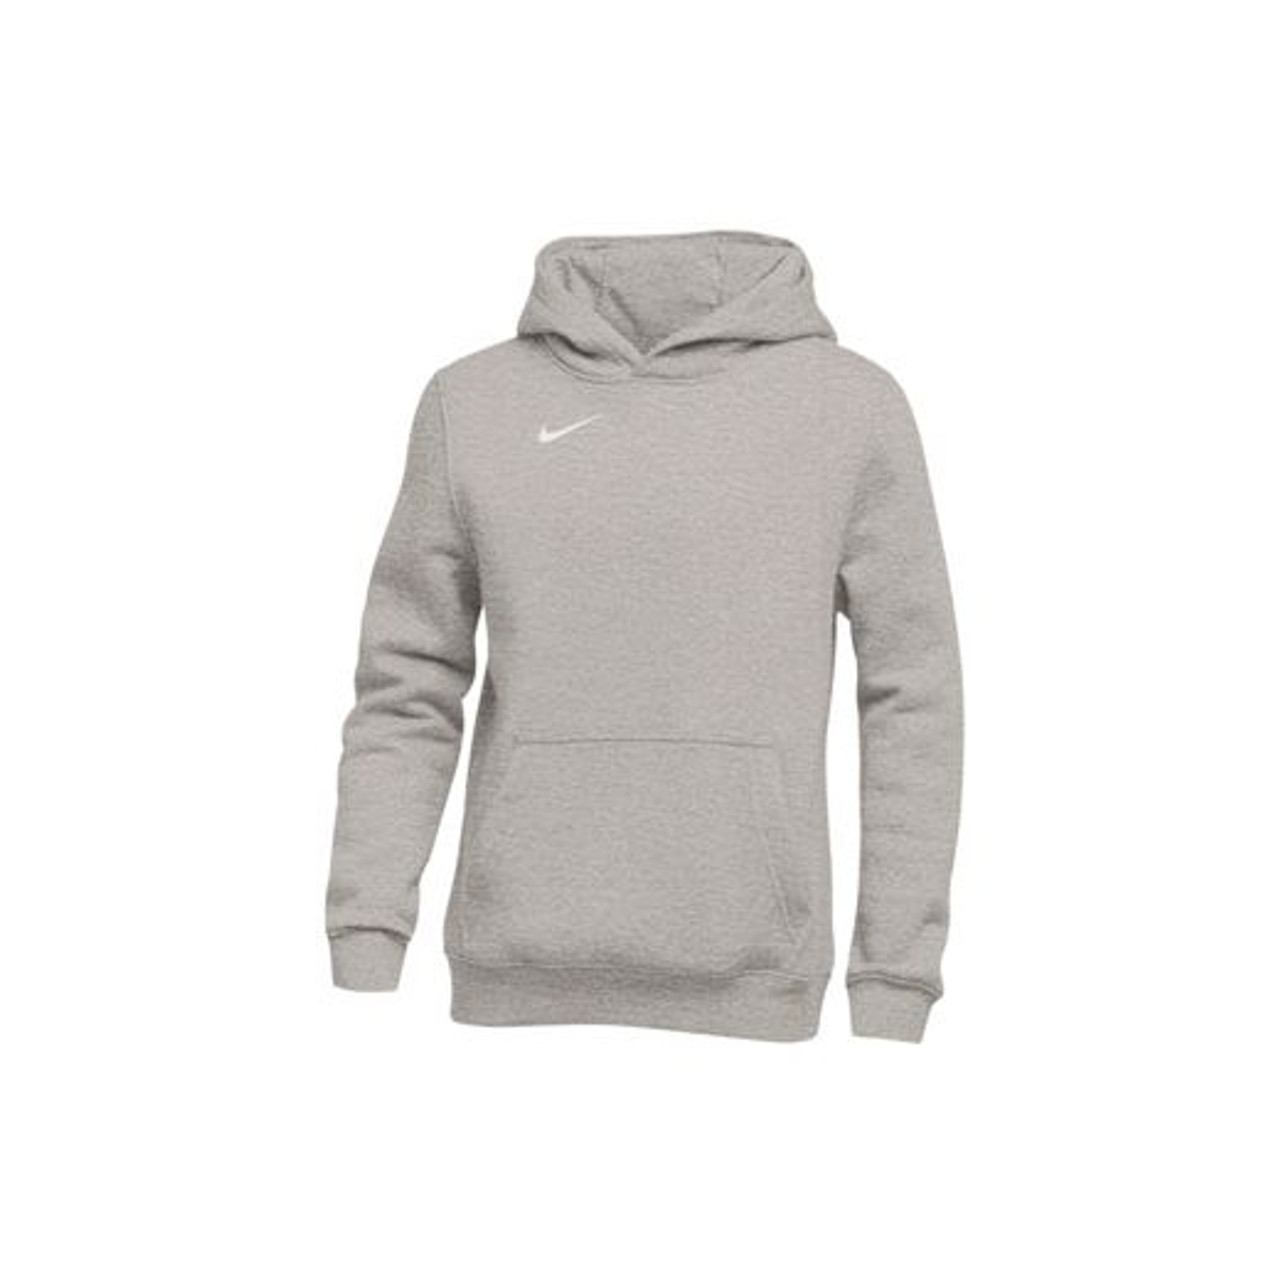 nike hoodie heather grey